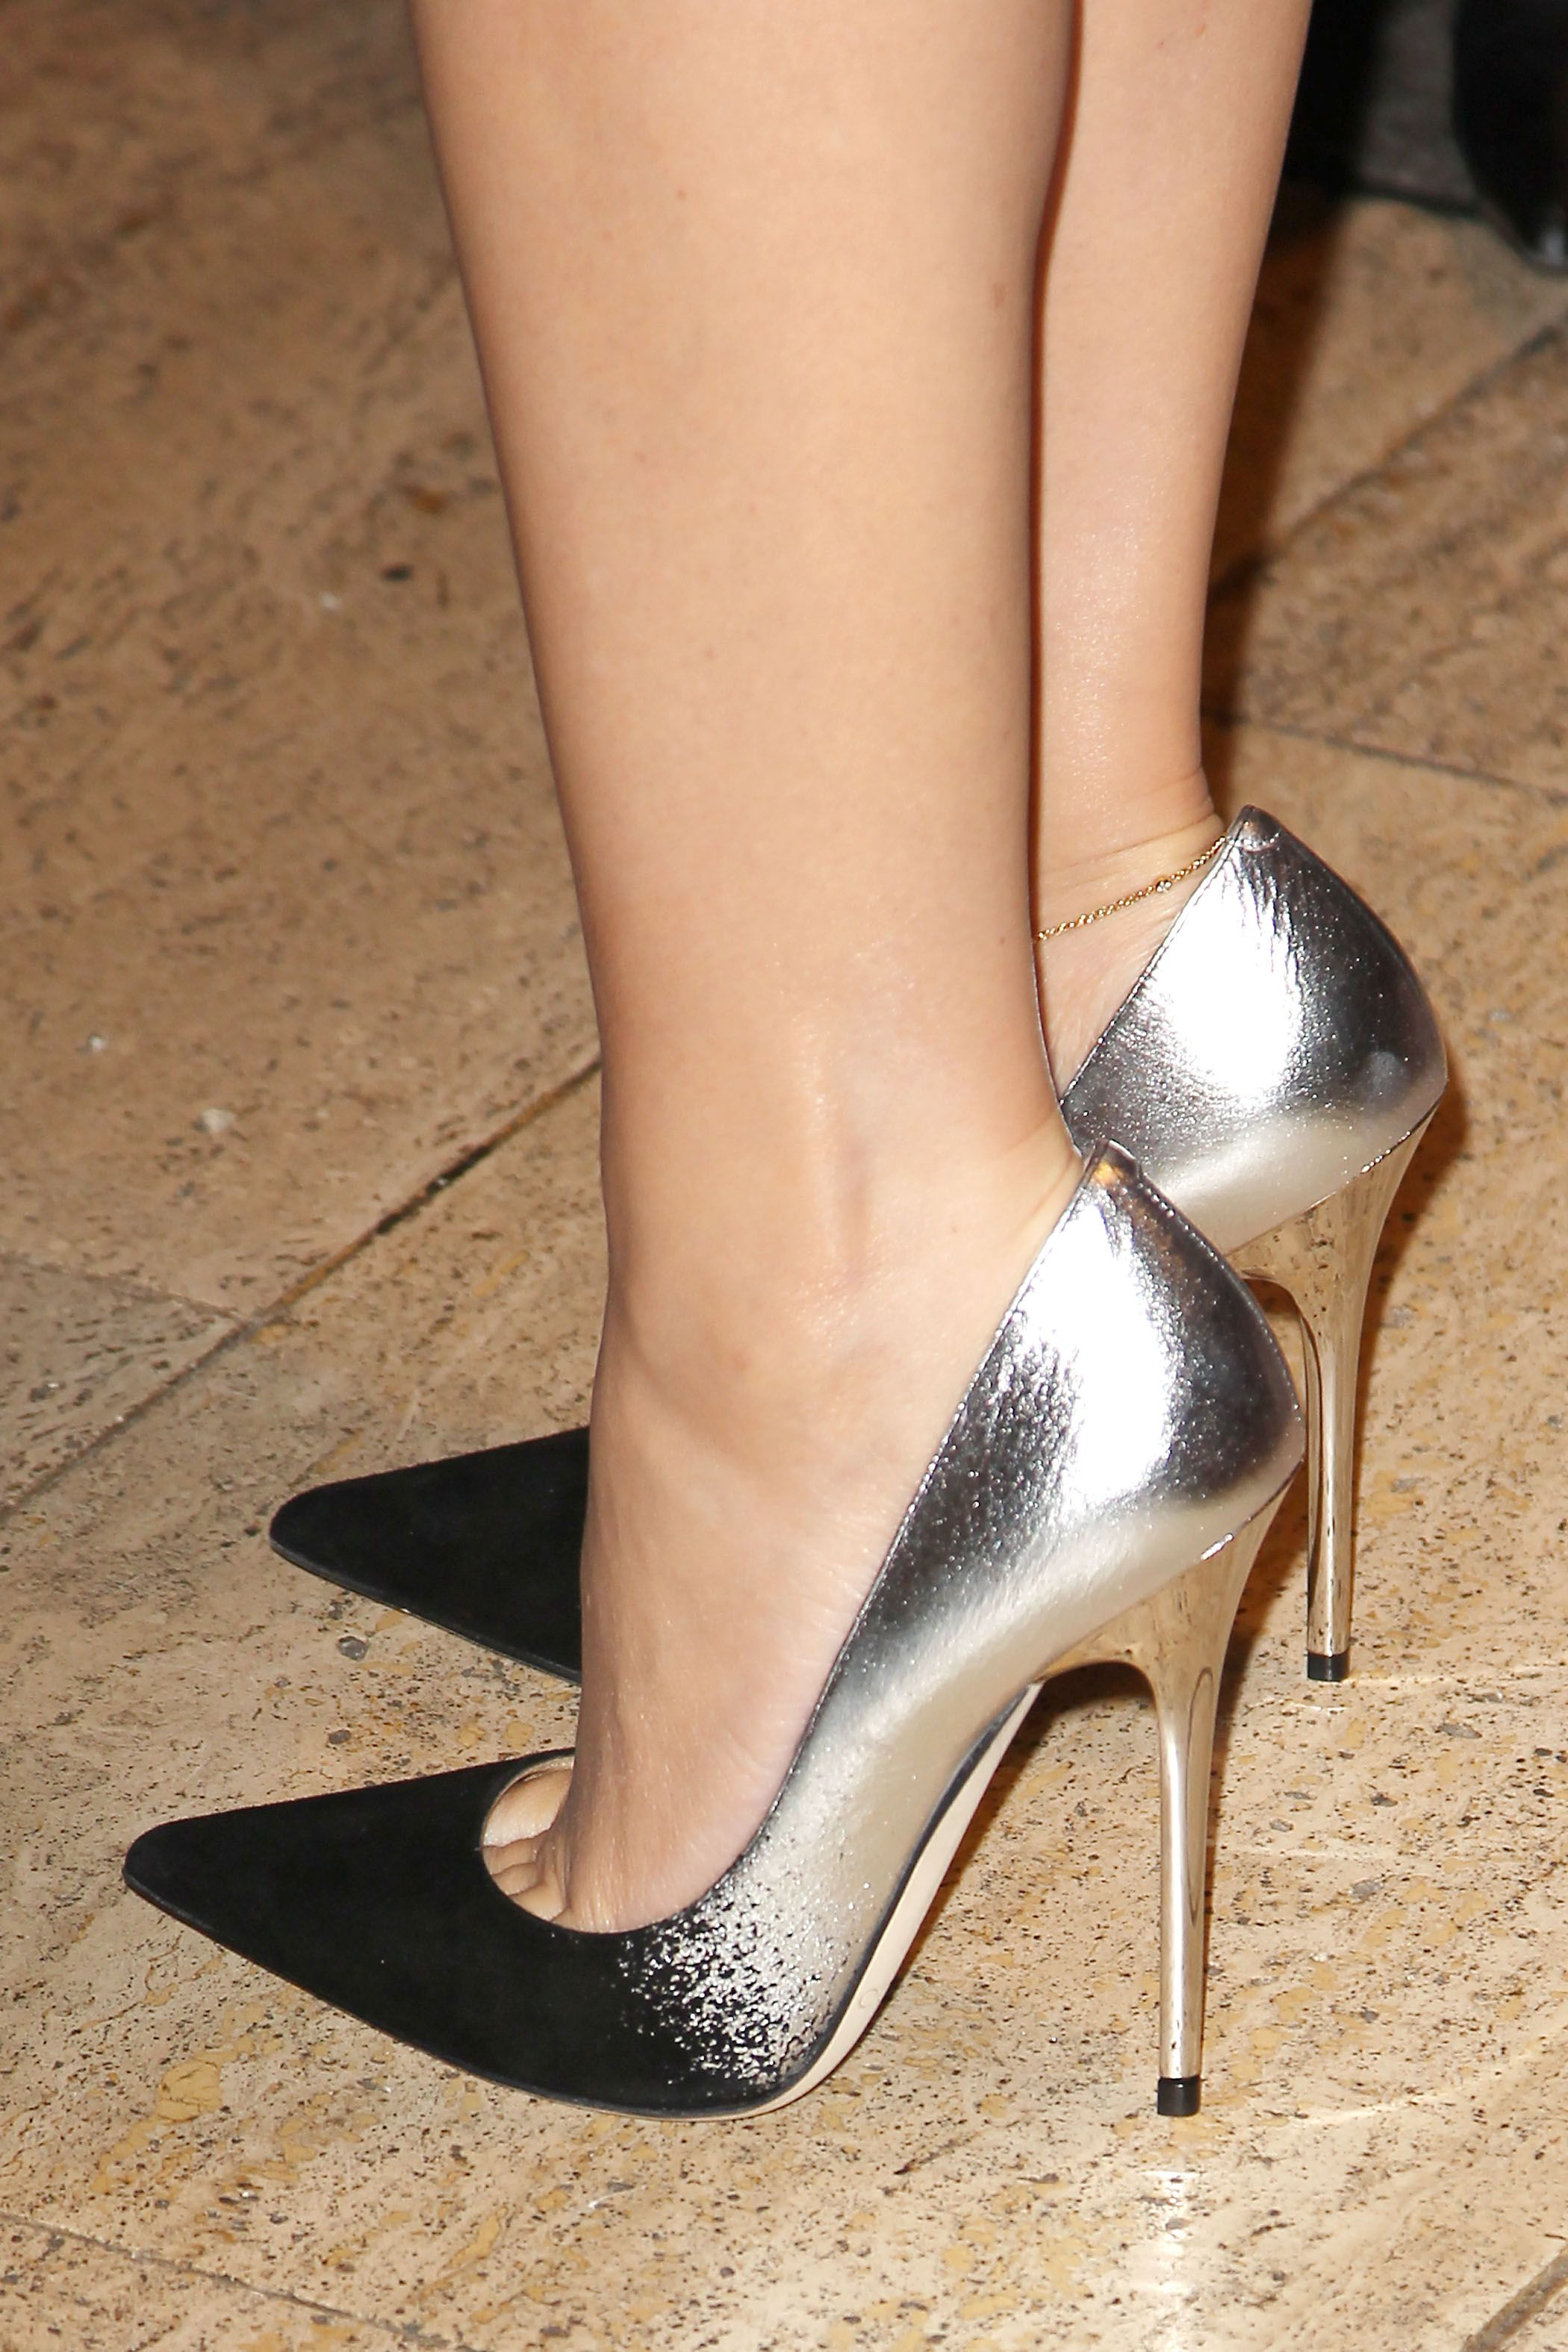 036c72ee776 jimmy choo anouk pumps in black silver on the feet of kylie minogue.   shoeporn